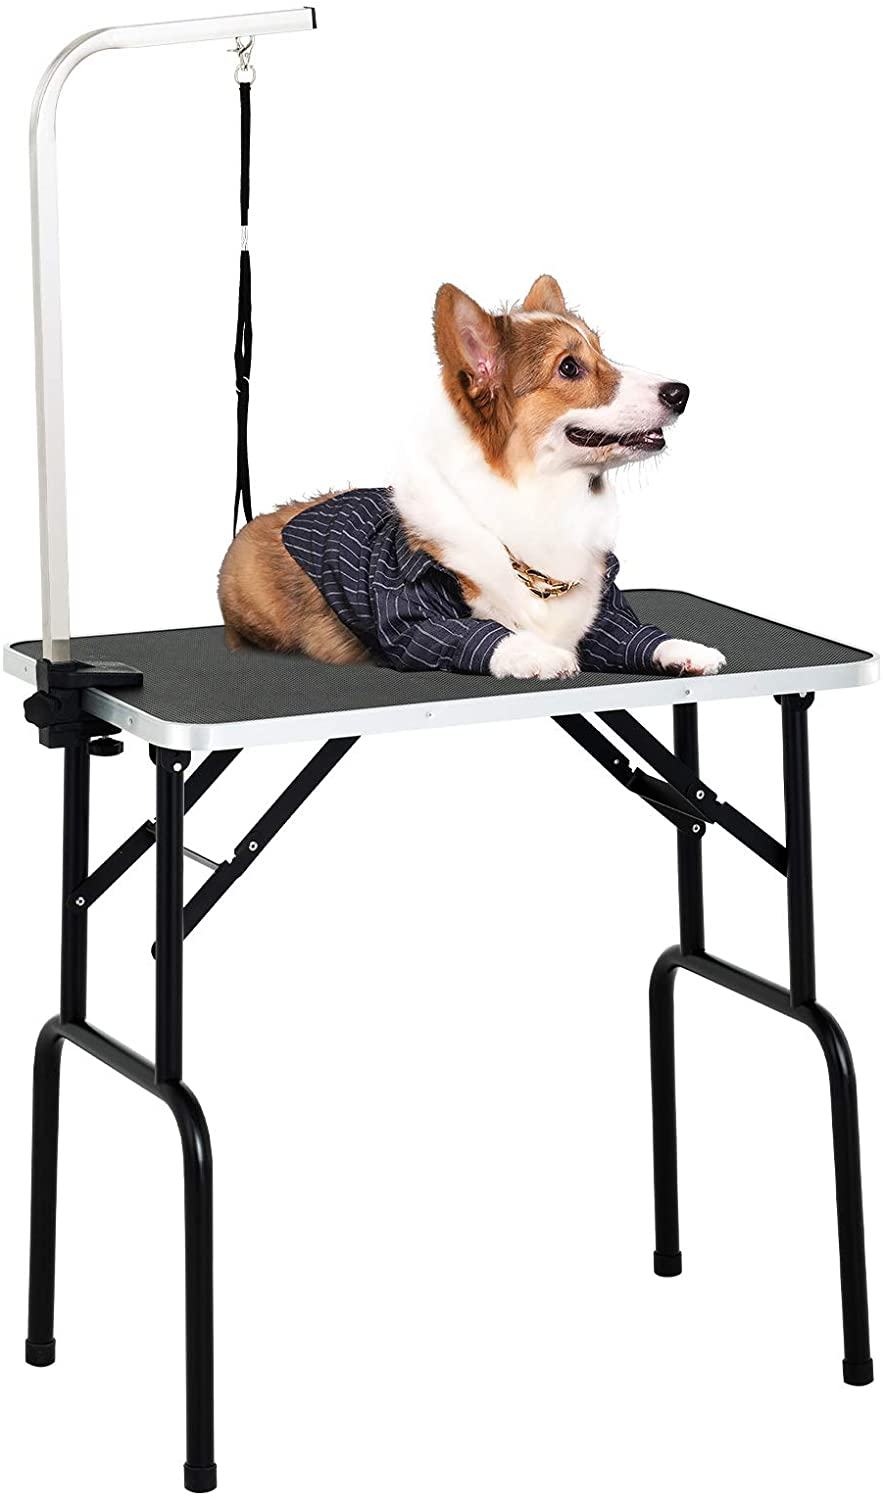 SUNCOO Portable Pet Dog Grooming Table for small dogs